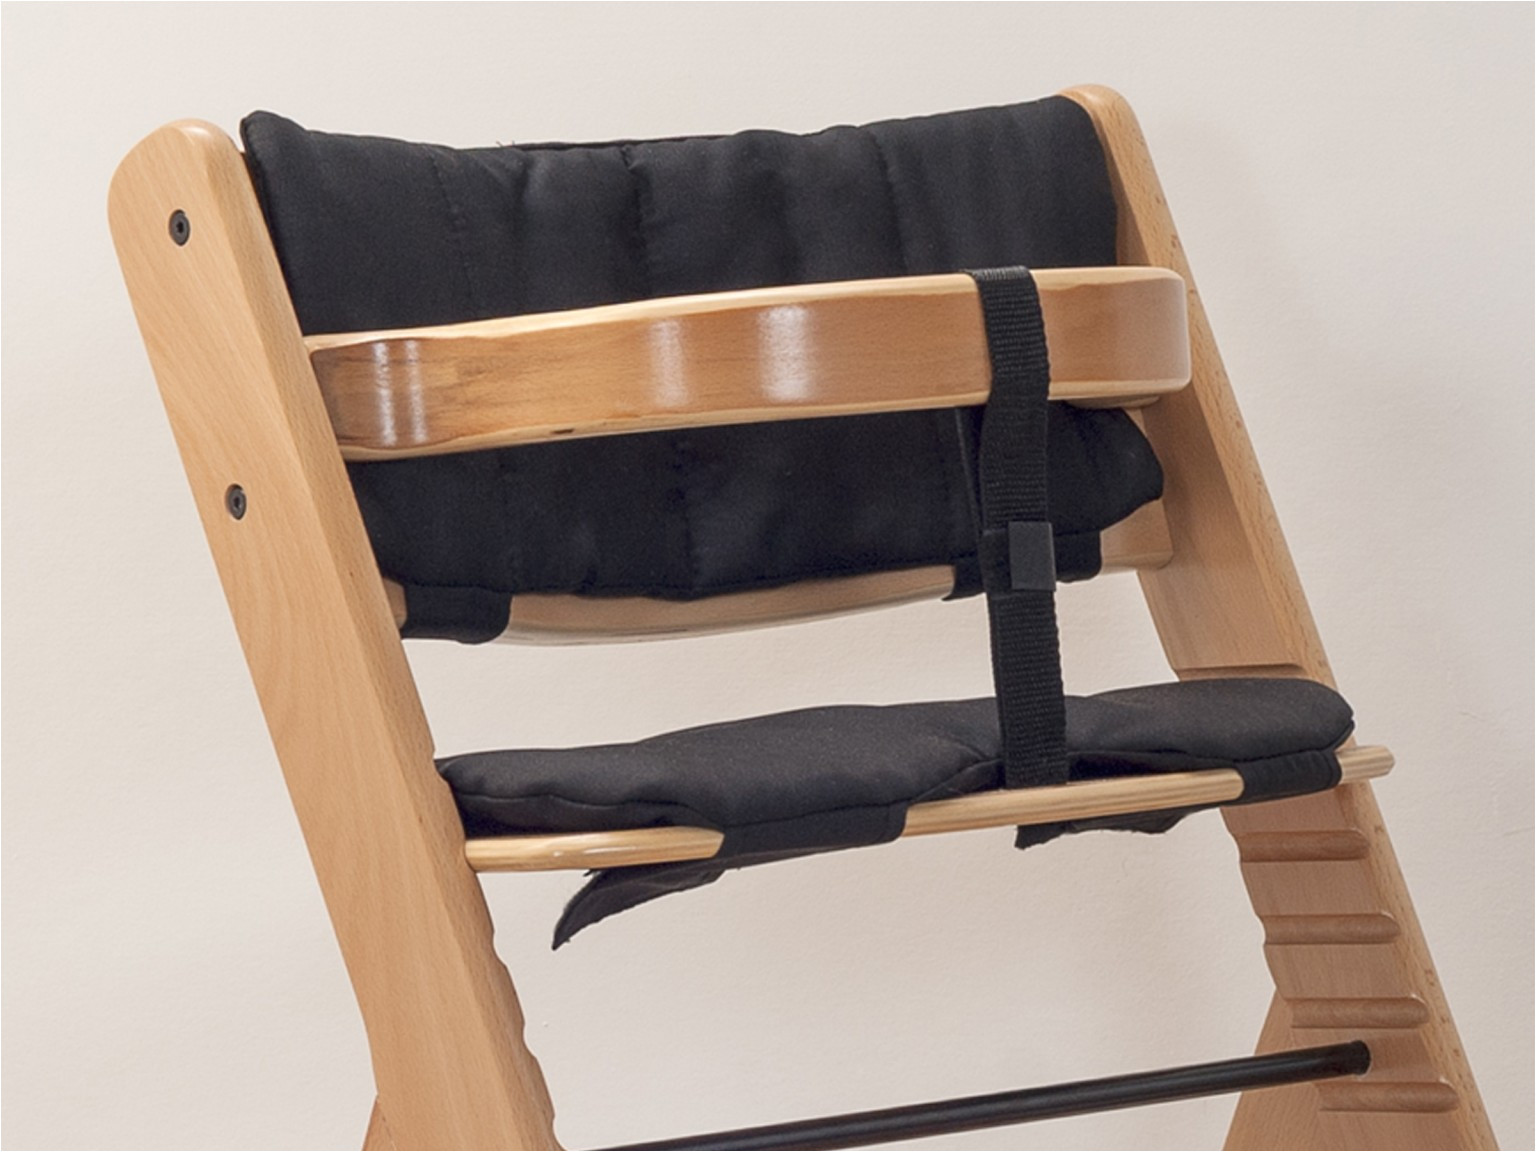 This End Up Woods End Replacement Cushions Mocka soho Highchair Cushions Highchair Accessories